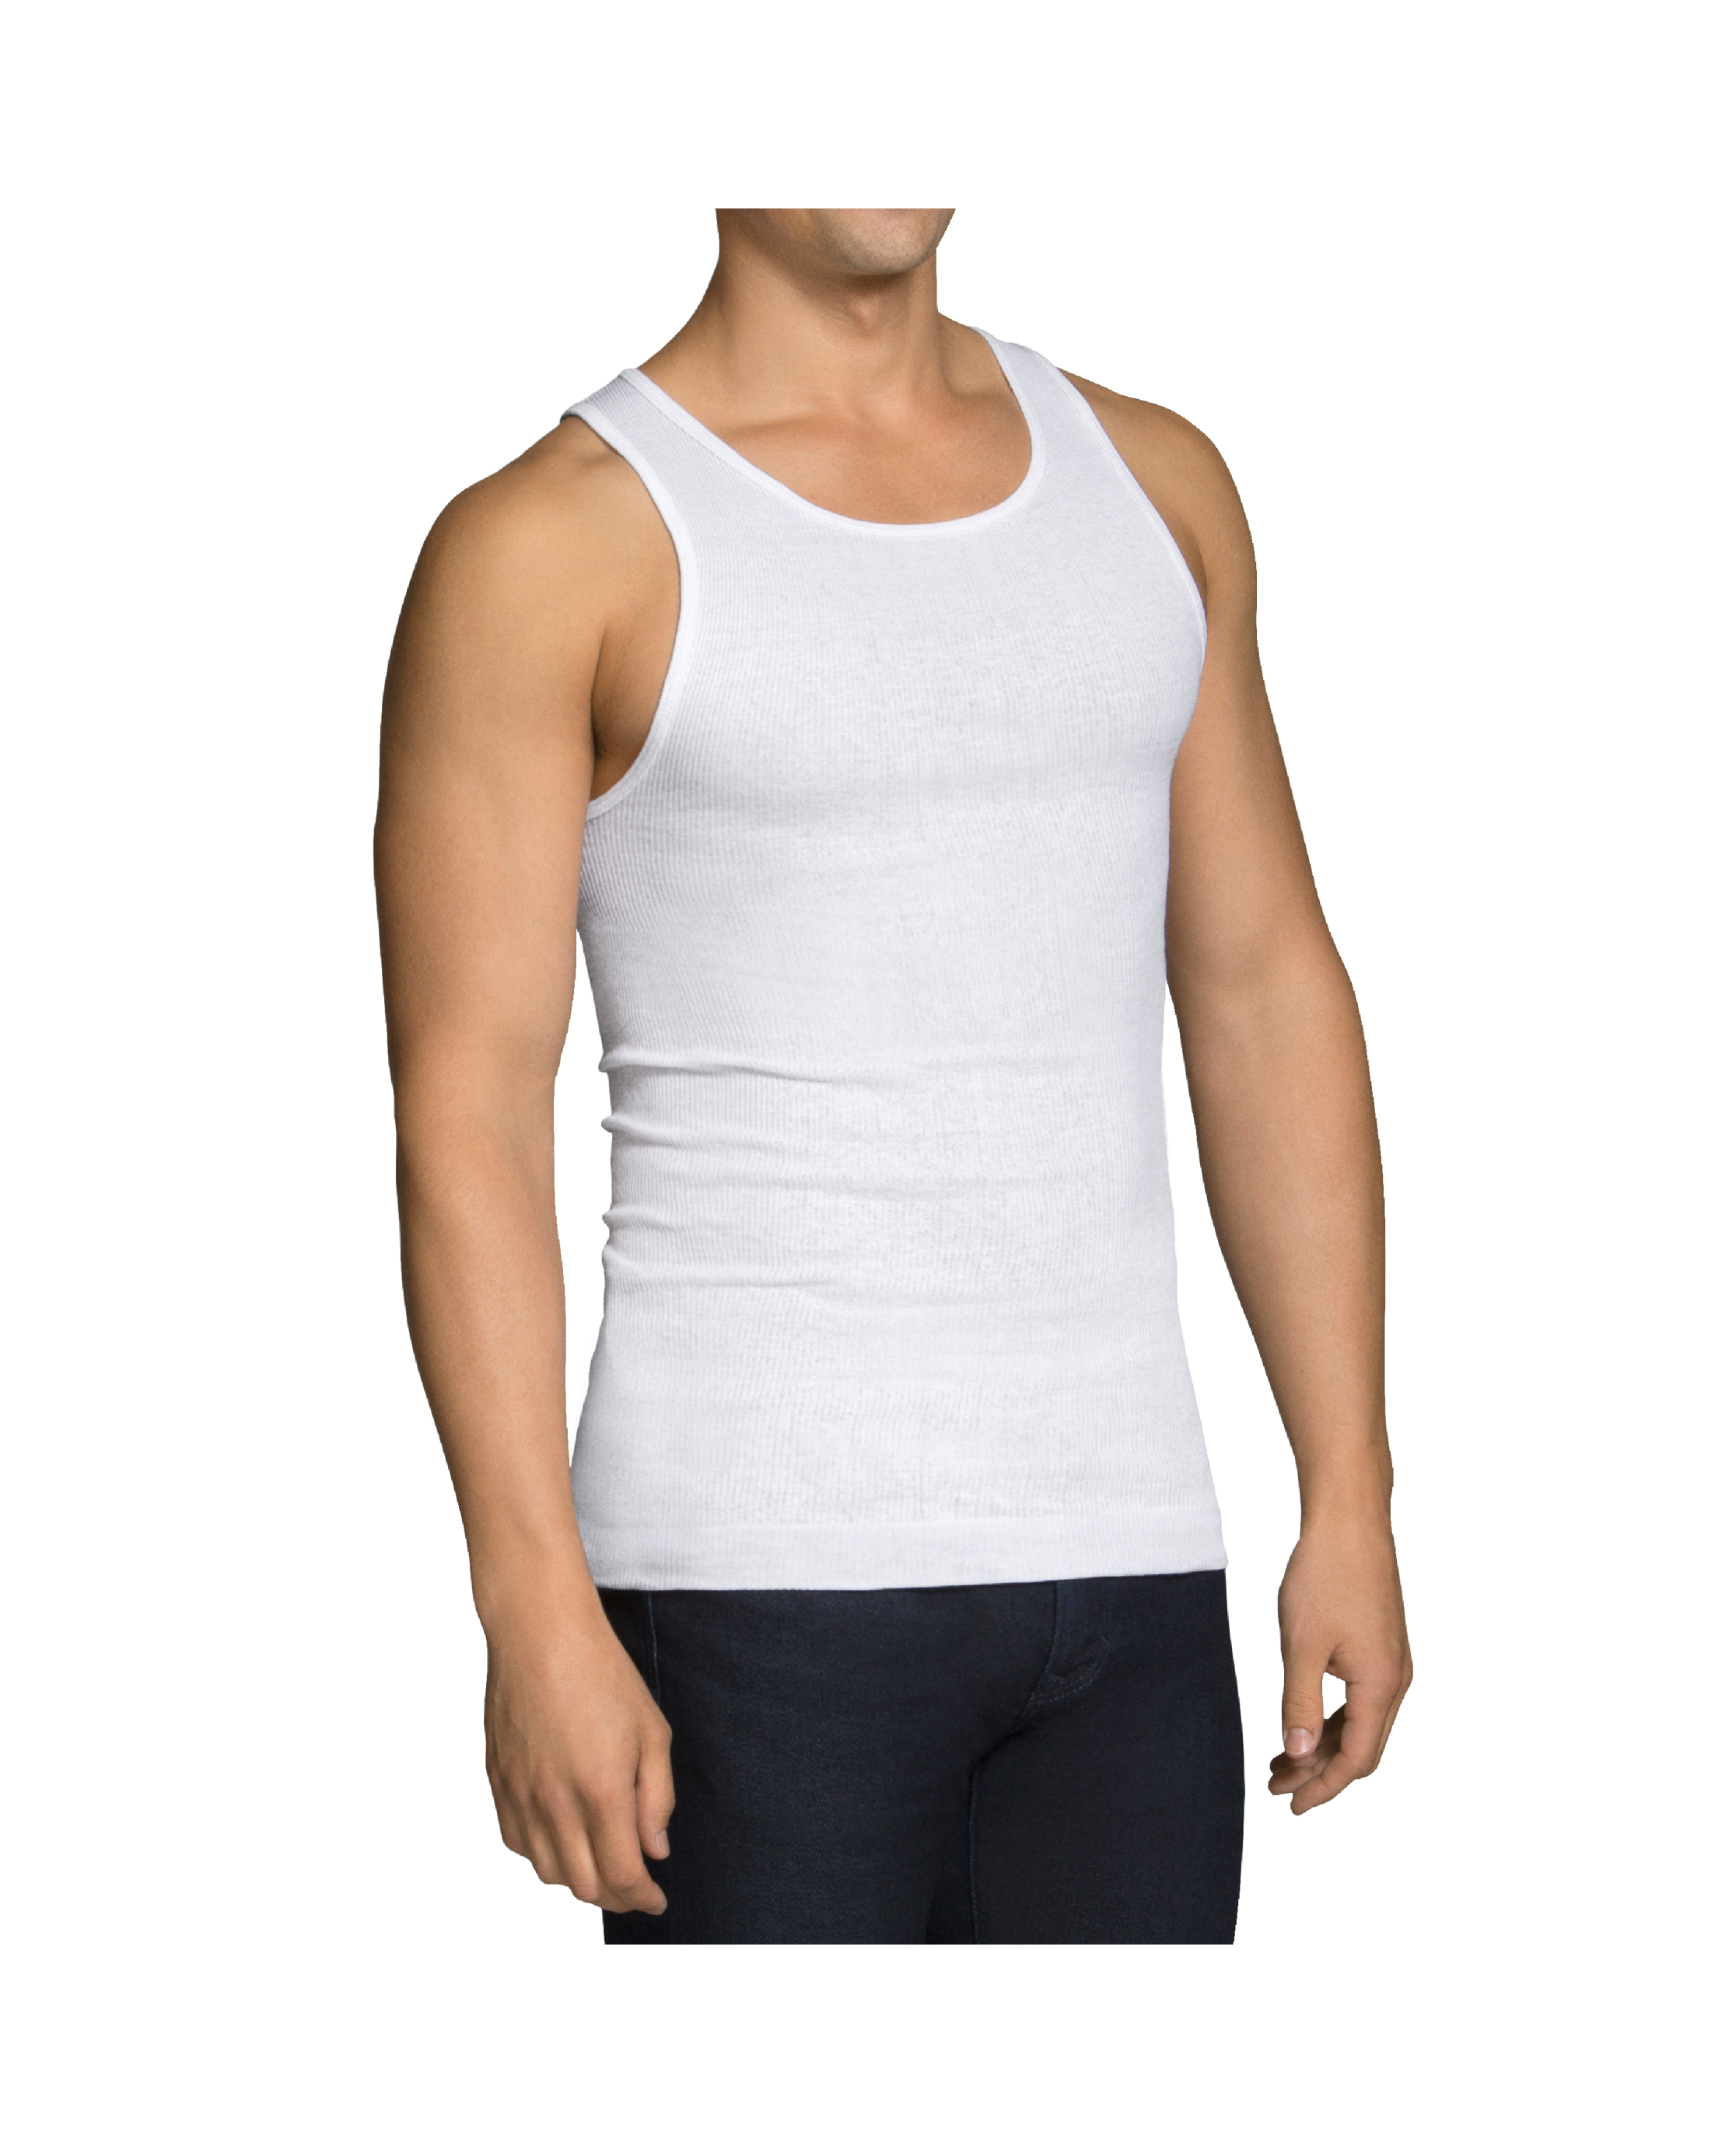 1d5659d21f0c4 Mens dual defense white a shirts pack white png 1397x1732 White beater tank  top png